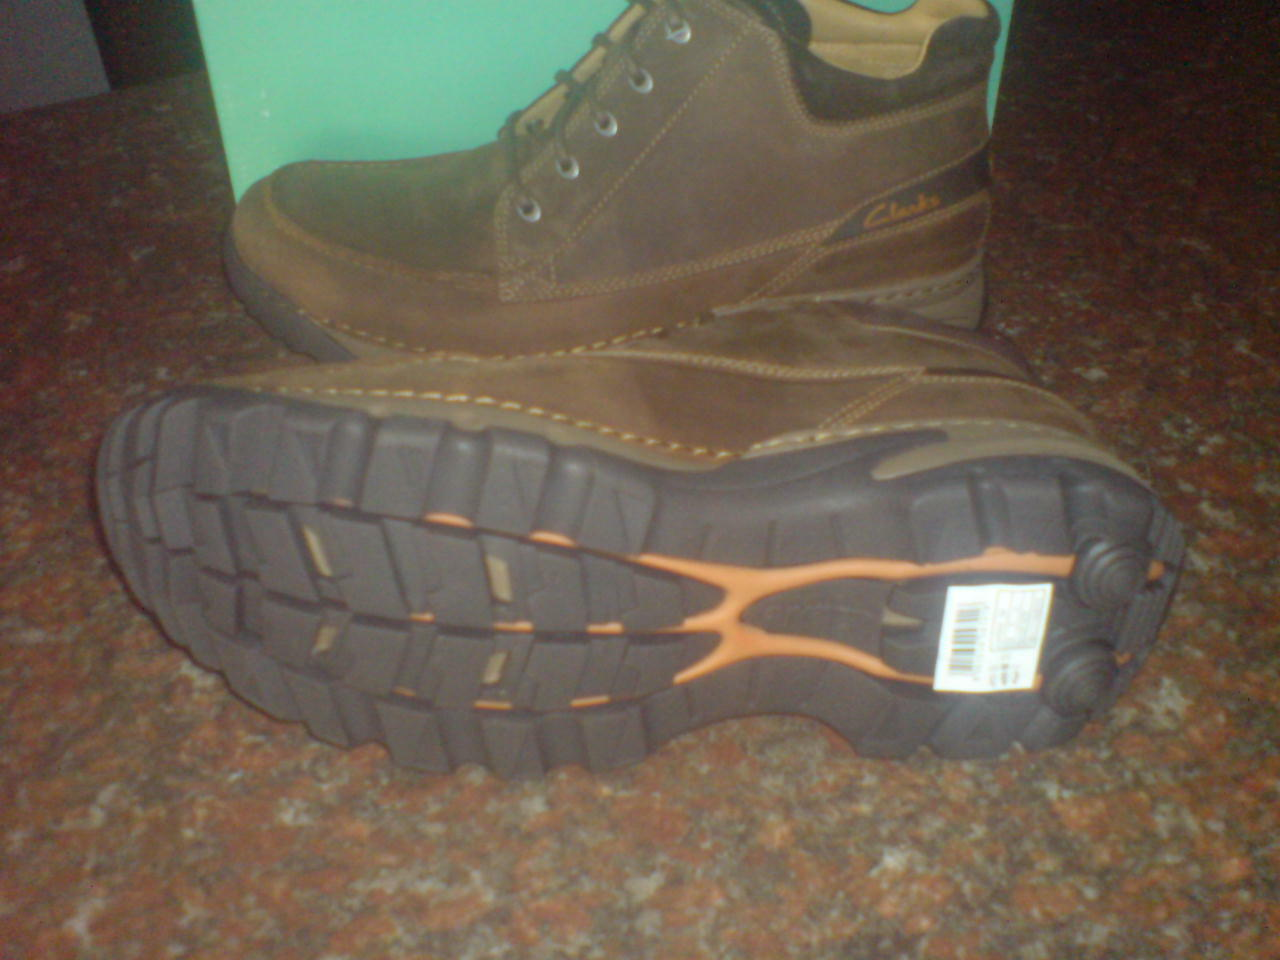 Clarks Clarks Clarks Uomo ** RENDER PATH ** EXTRAWIDE ** ACTIVE AIR FLOW ** 7c1de1